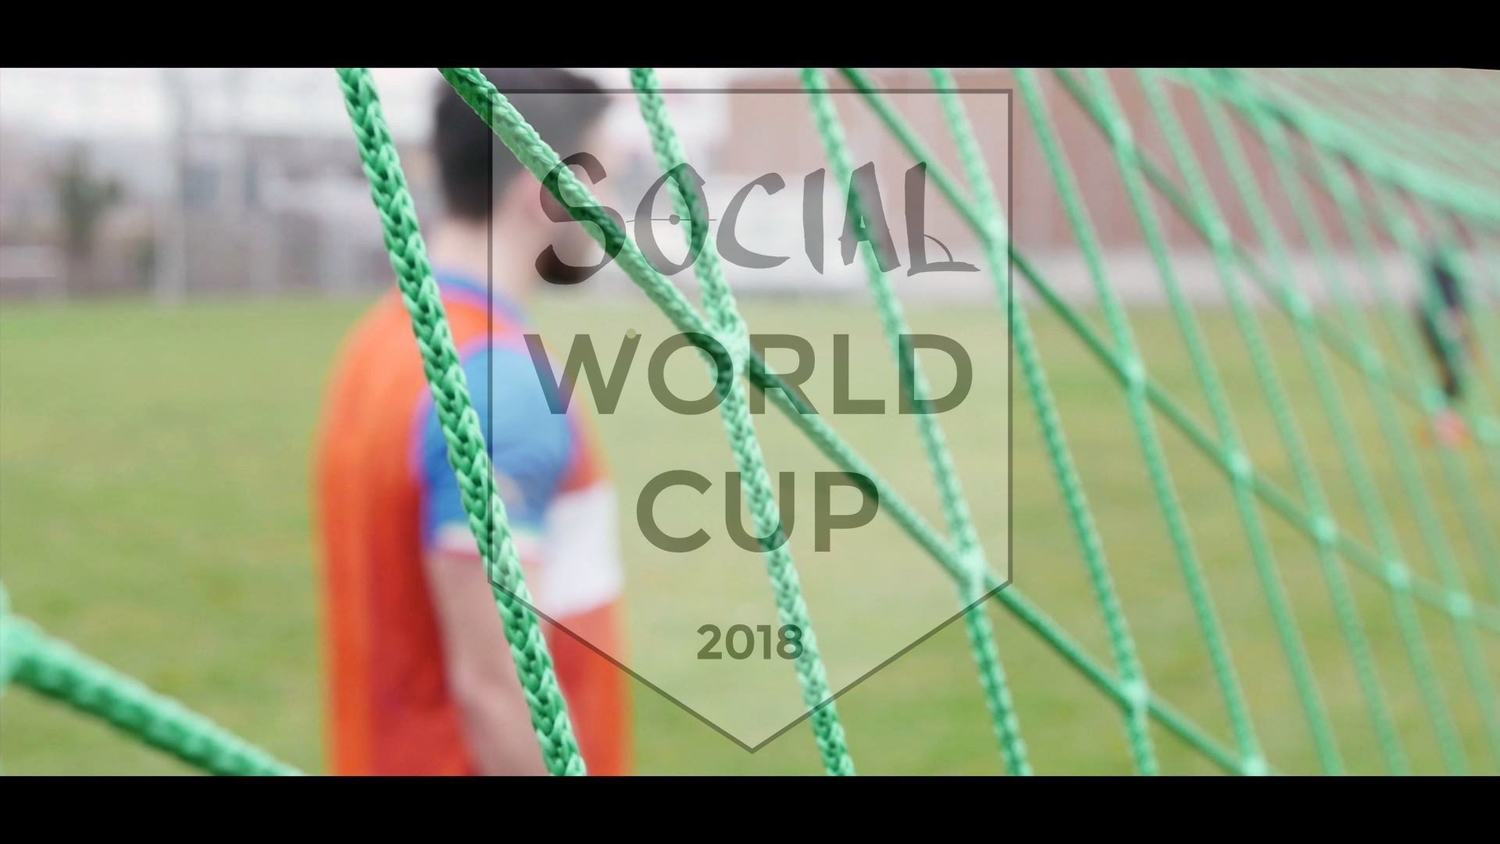 Introducing the Social World Cup!